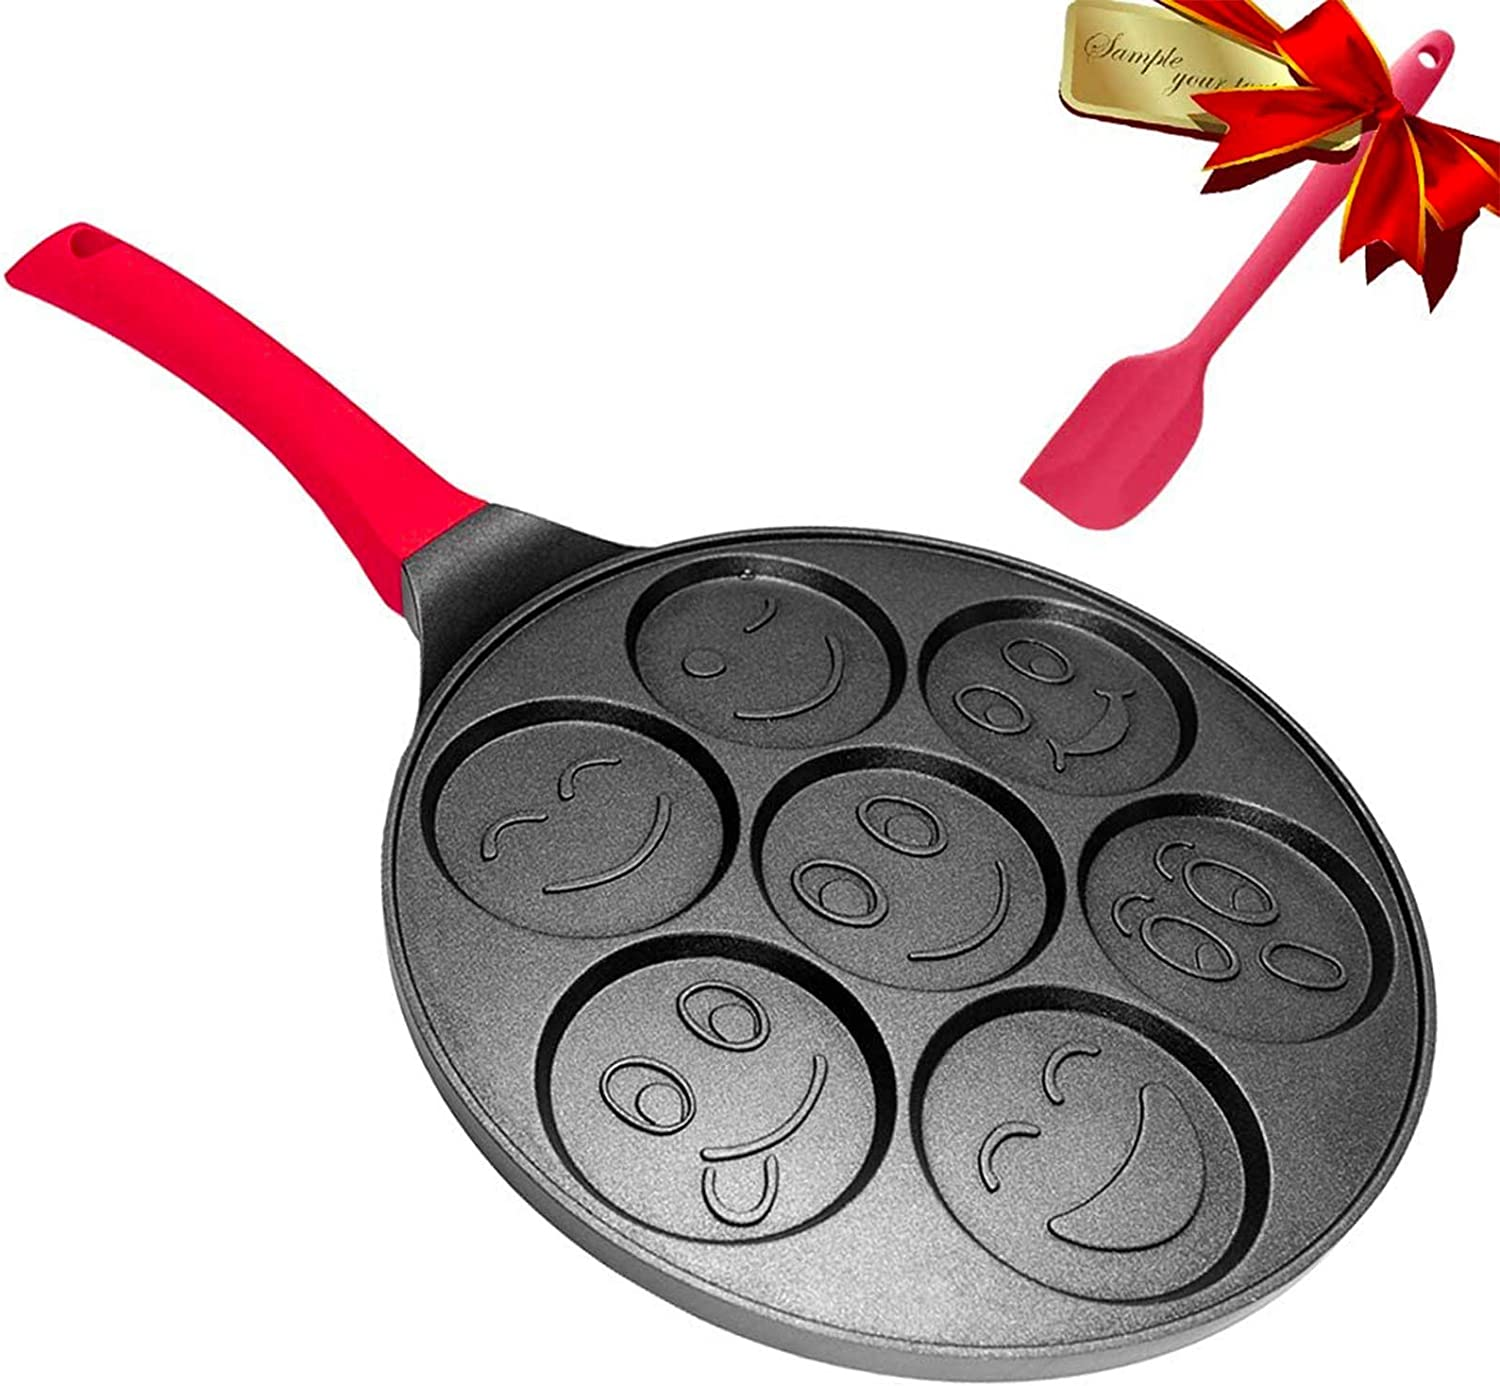 Emoji Pancake Pan - Pancake Griddle Shapes - Nonstick Smiley Face Pancake Pan Nonstick 7 Mold Emoji Smiley Pancake,DAYOOH